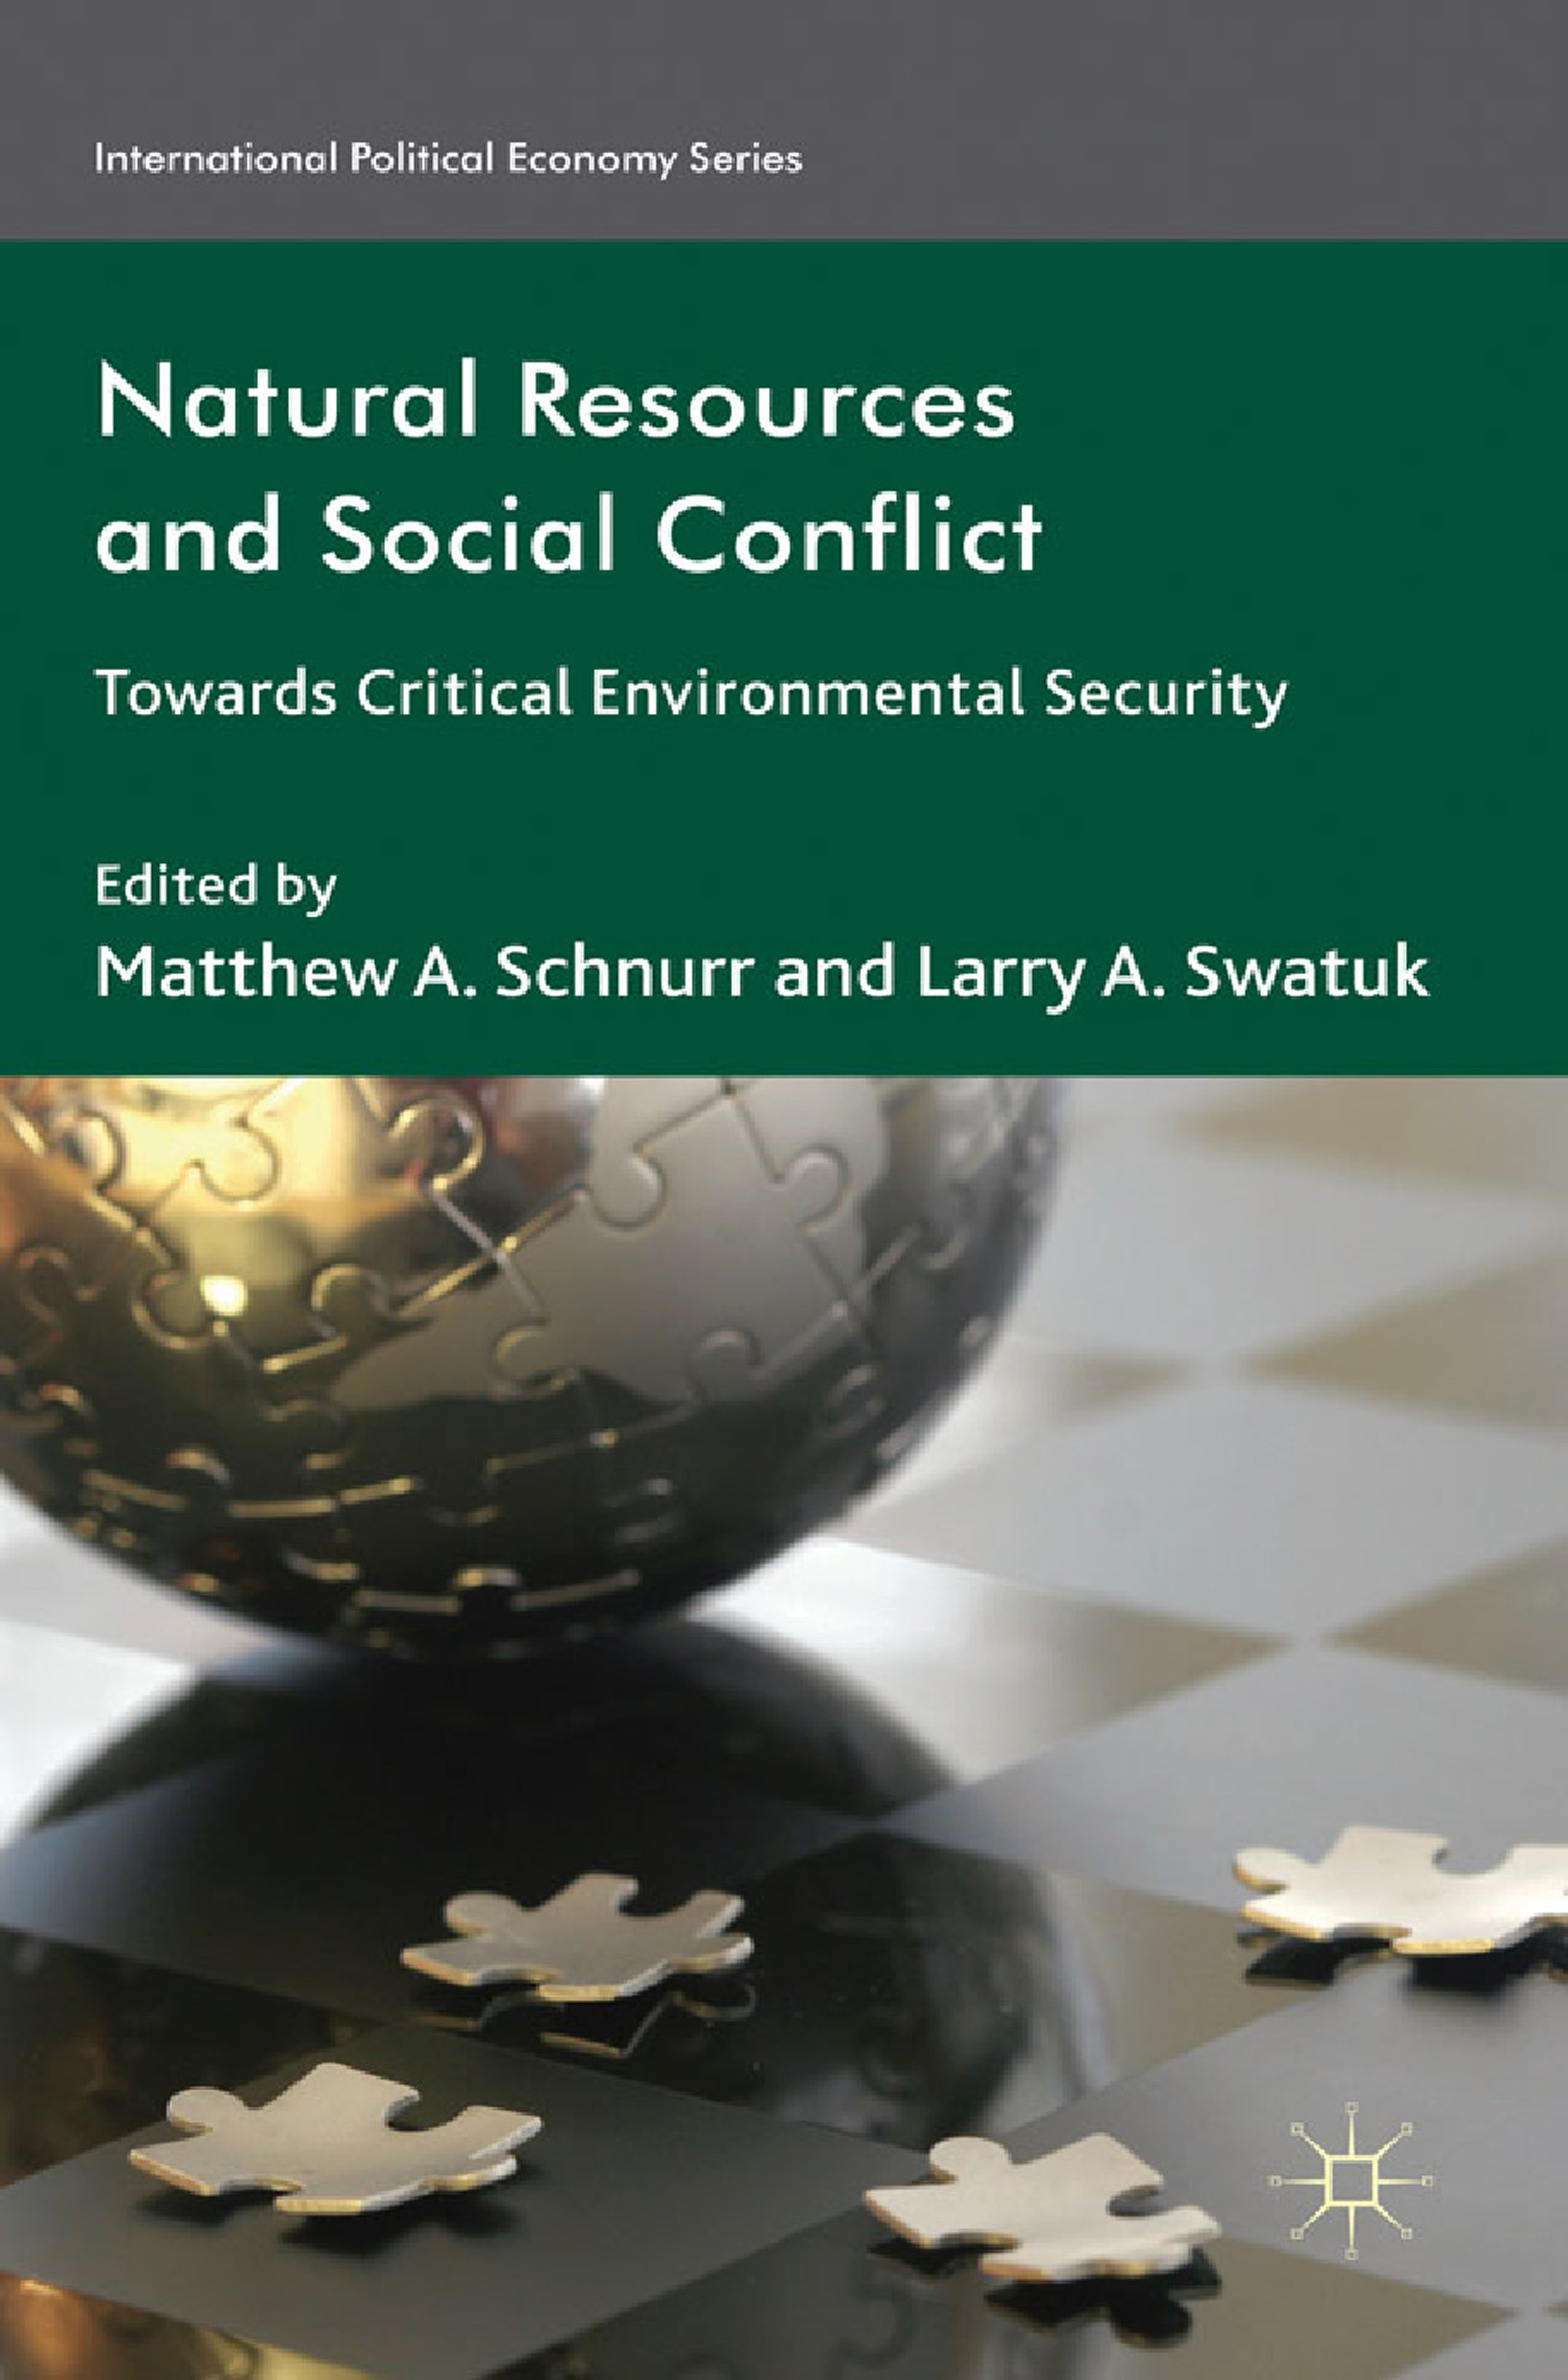 Schnurr, Matthew A. - Natural Resources and Social Conflict, ebook